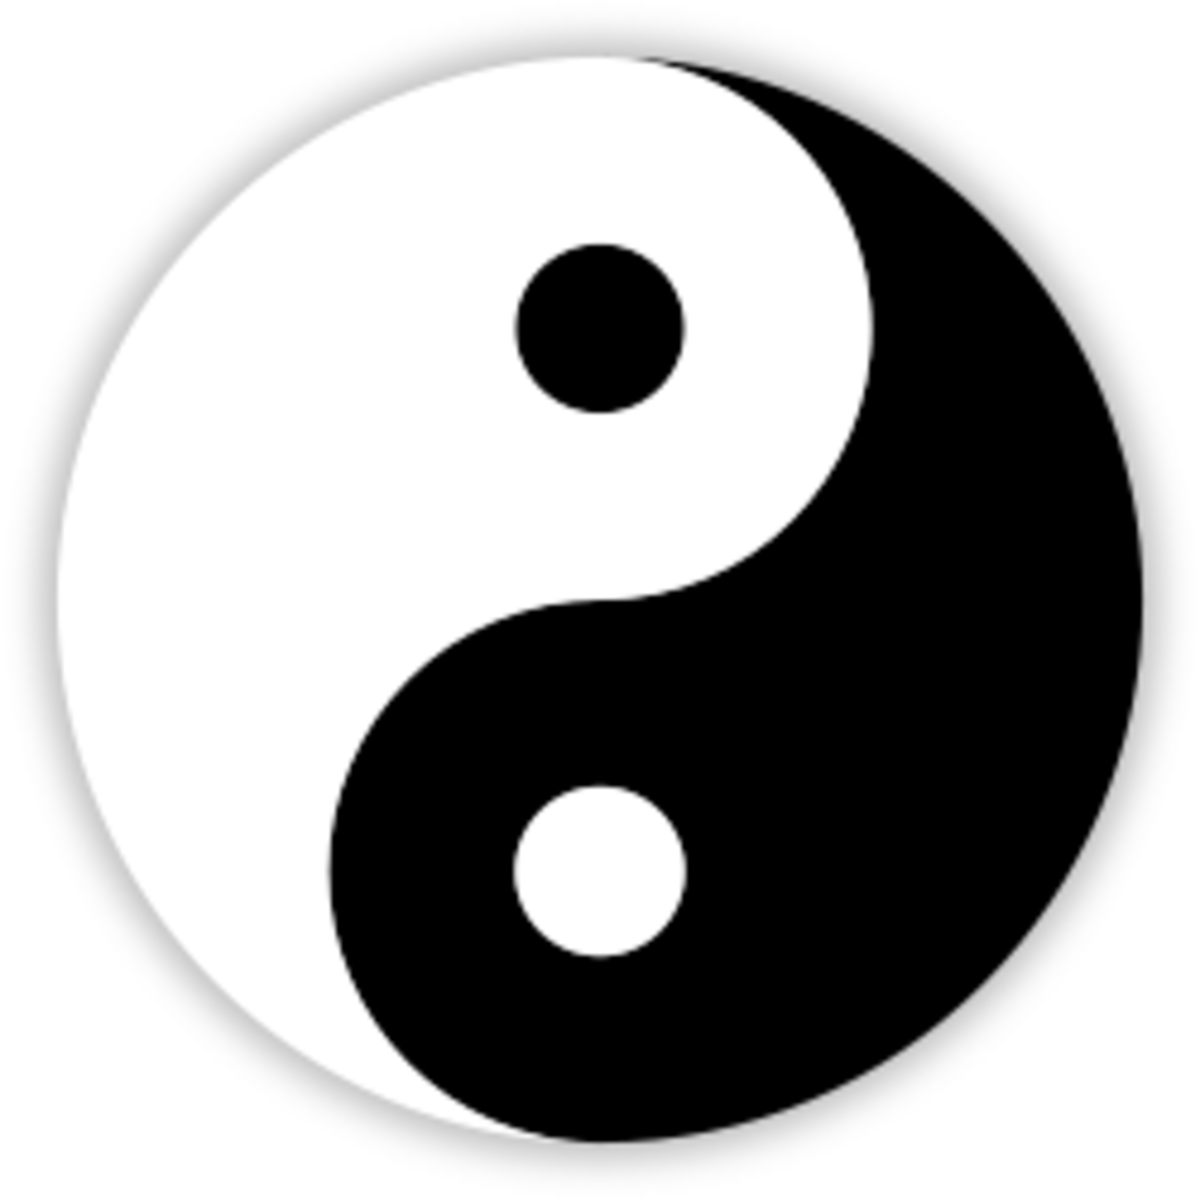 Yin and Yang symbolises opposing forces and energies in nature.